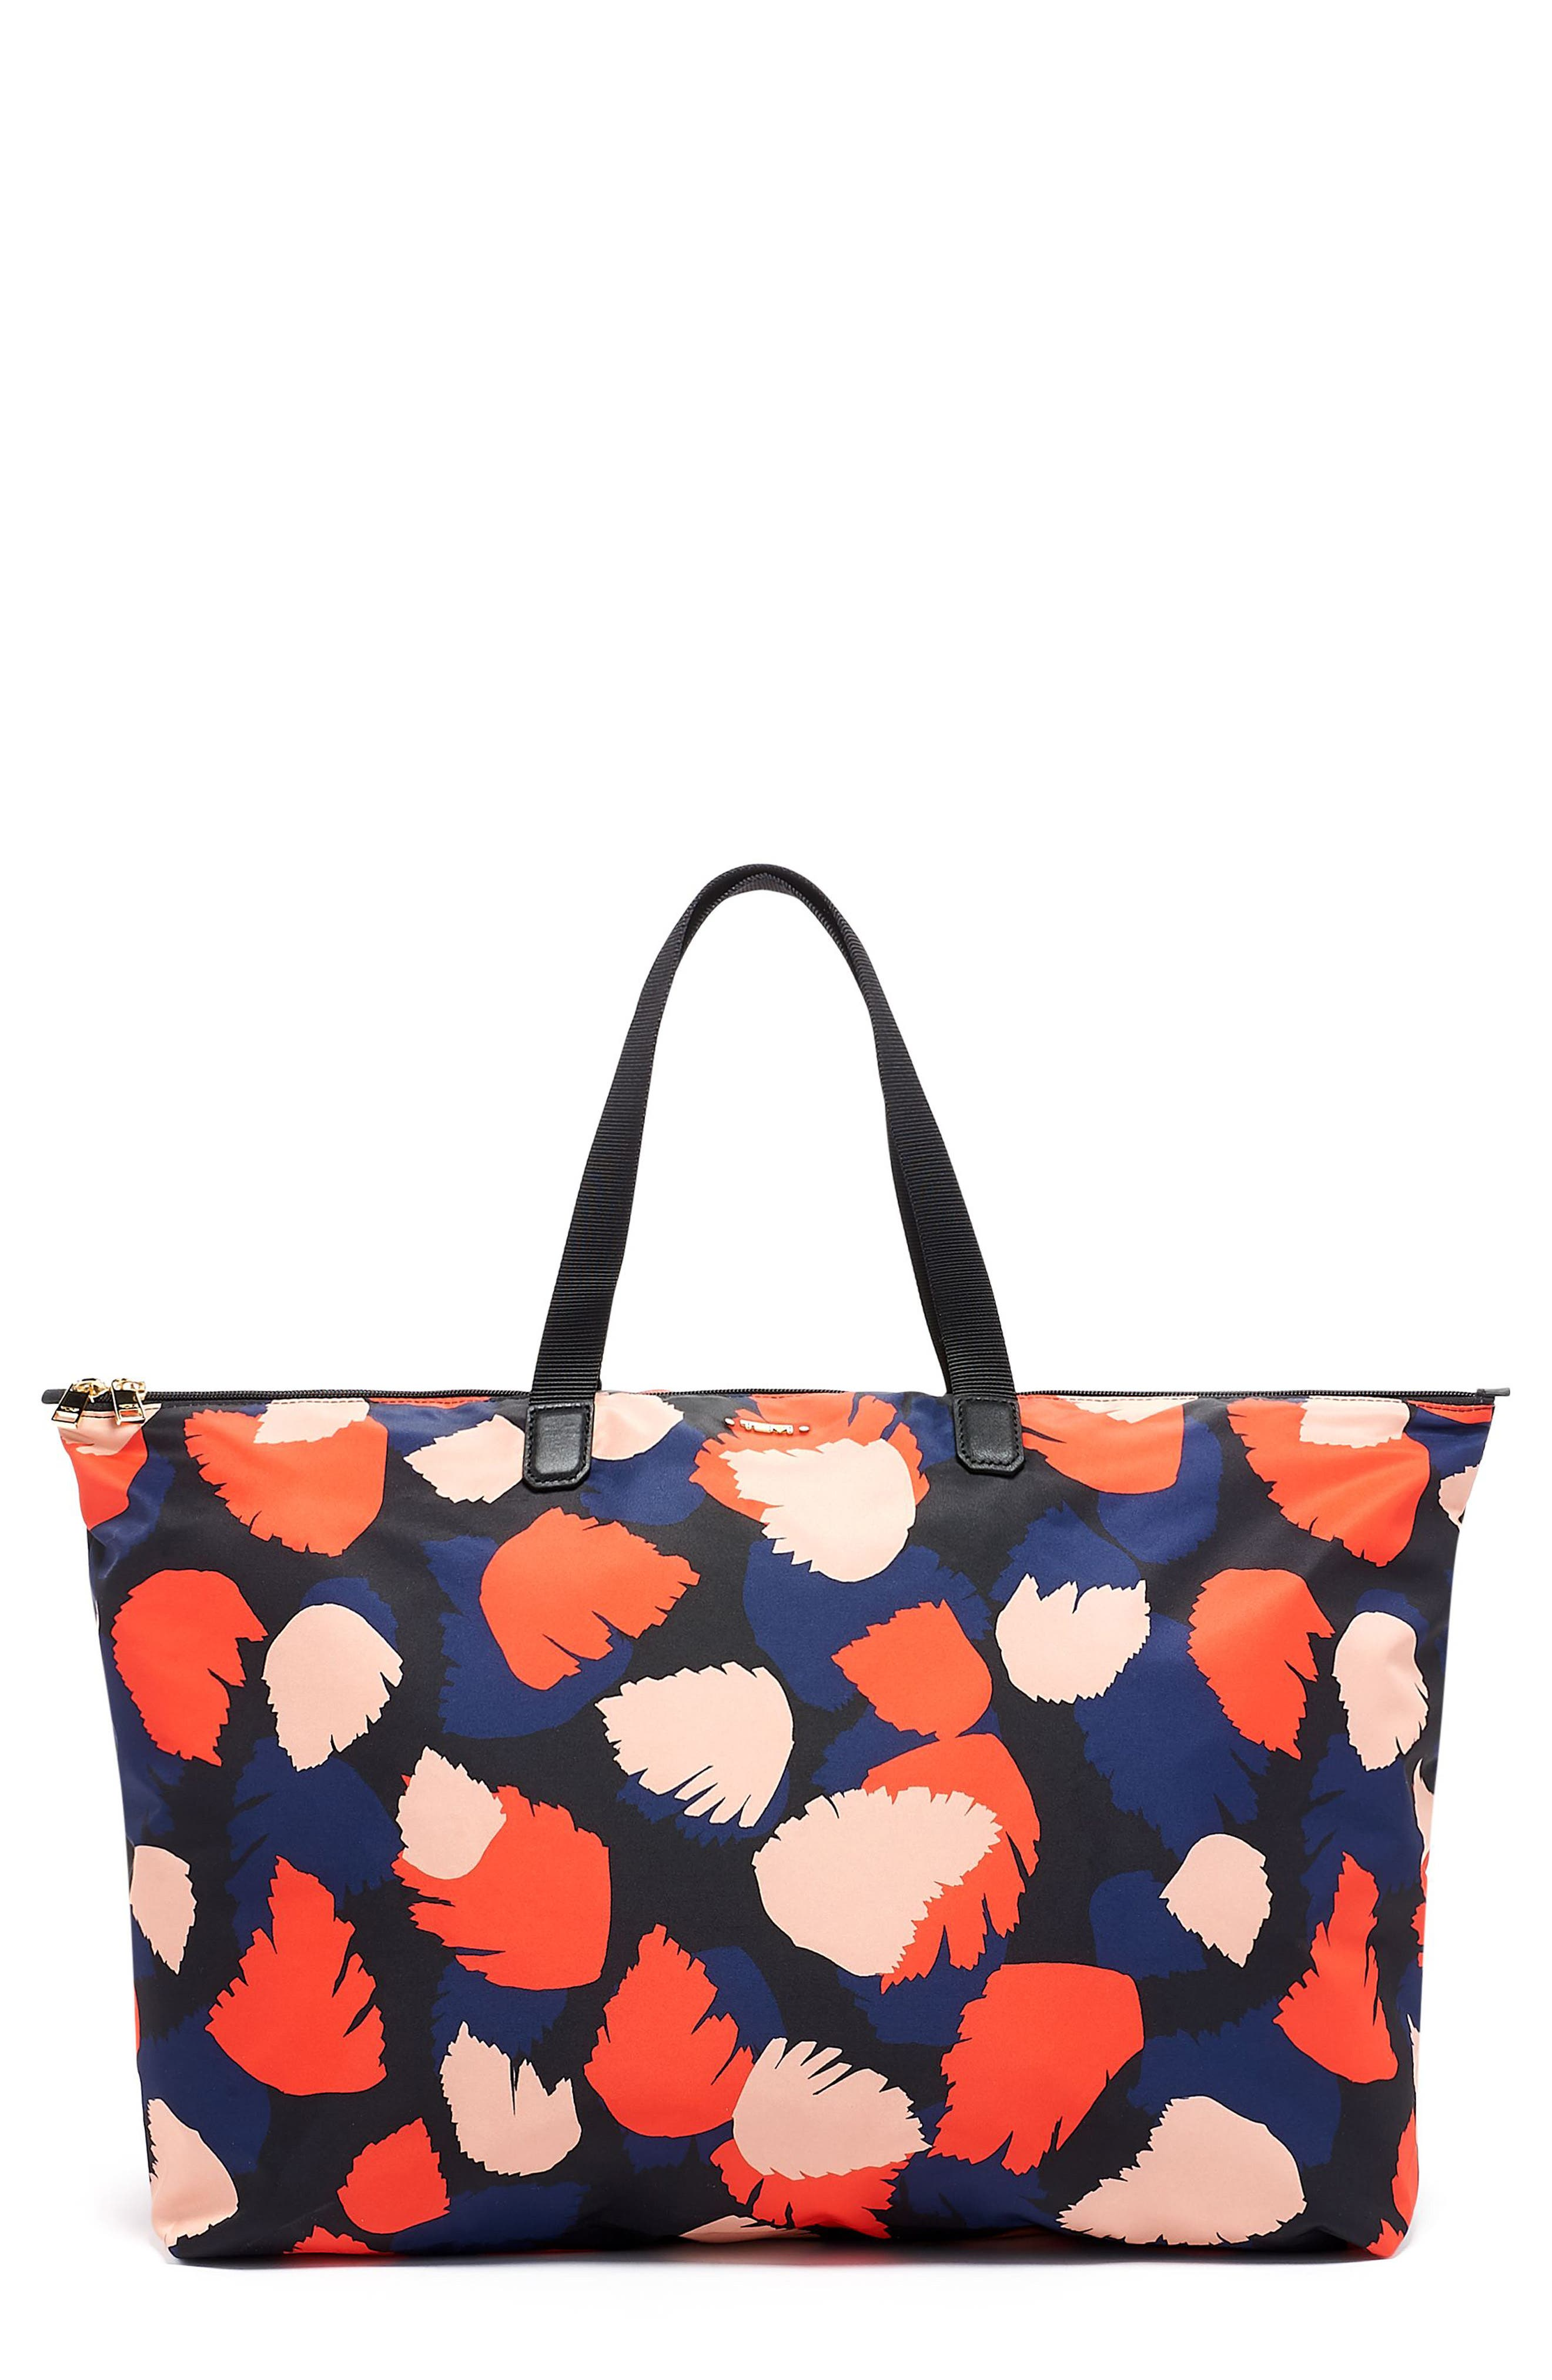 Voyageur - Just in Case<sup>®</sup> Nylon Travel Tote, Main, color, CONGO MULTI PRINT